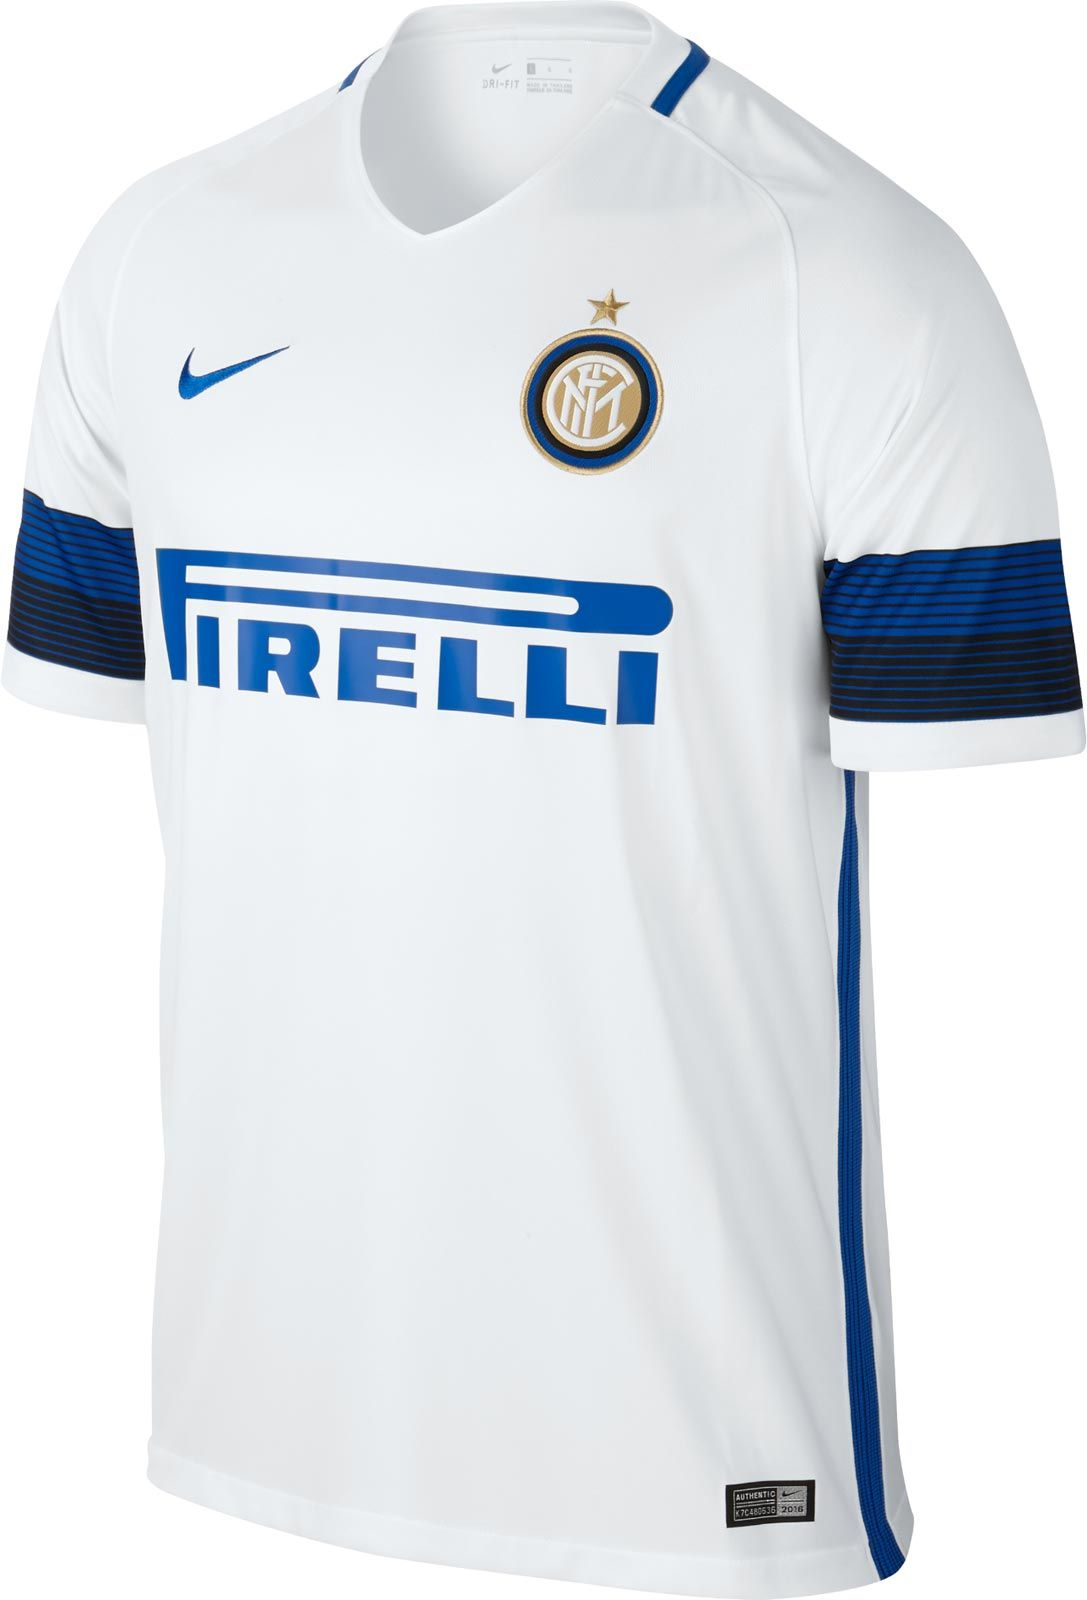 1a2f2ff9d5677 The new Inter Milan 16-17 away kit introduces a classy design ...